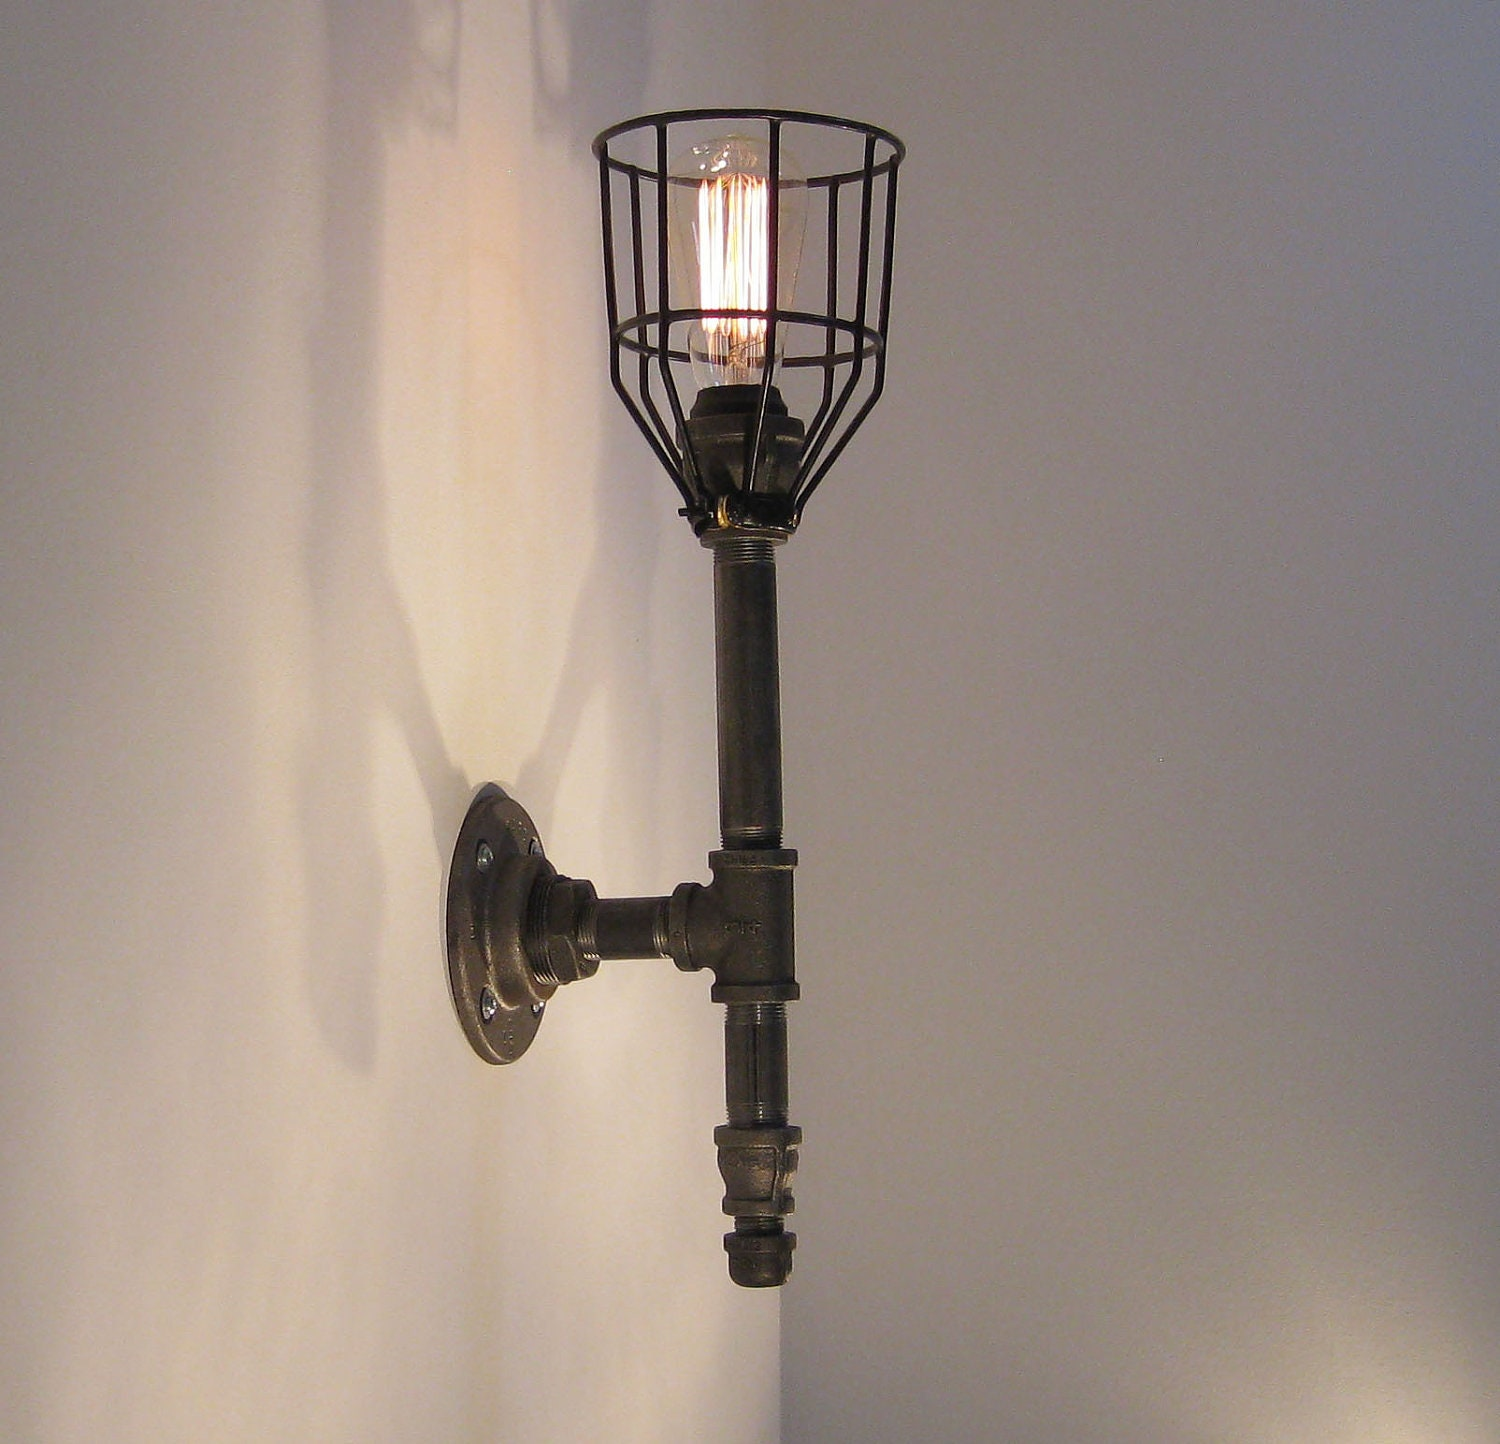 Wall Sconces Etsy : Wall Sconce: Black Malleable Iron Industrial Steampunk